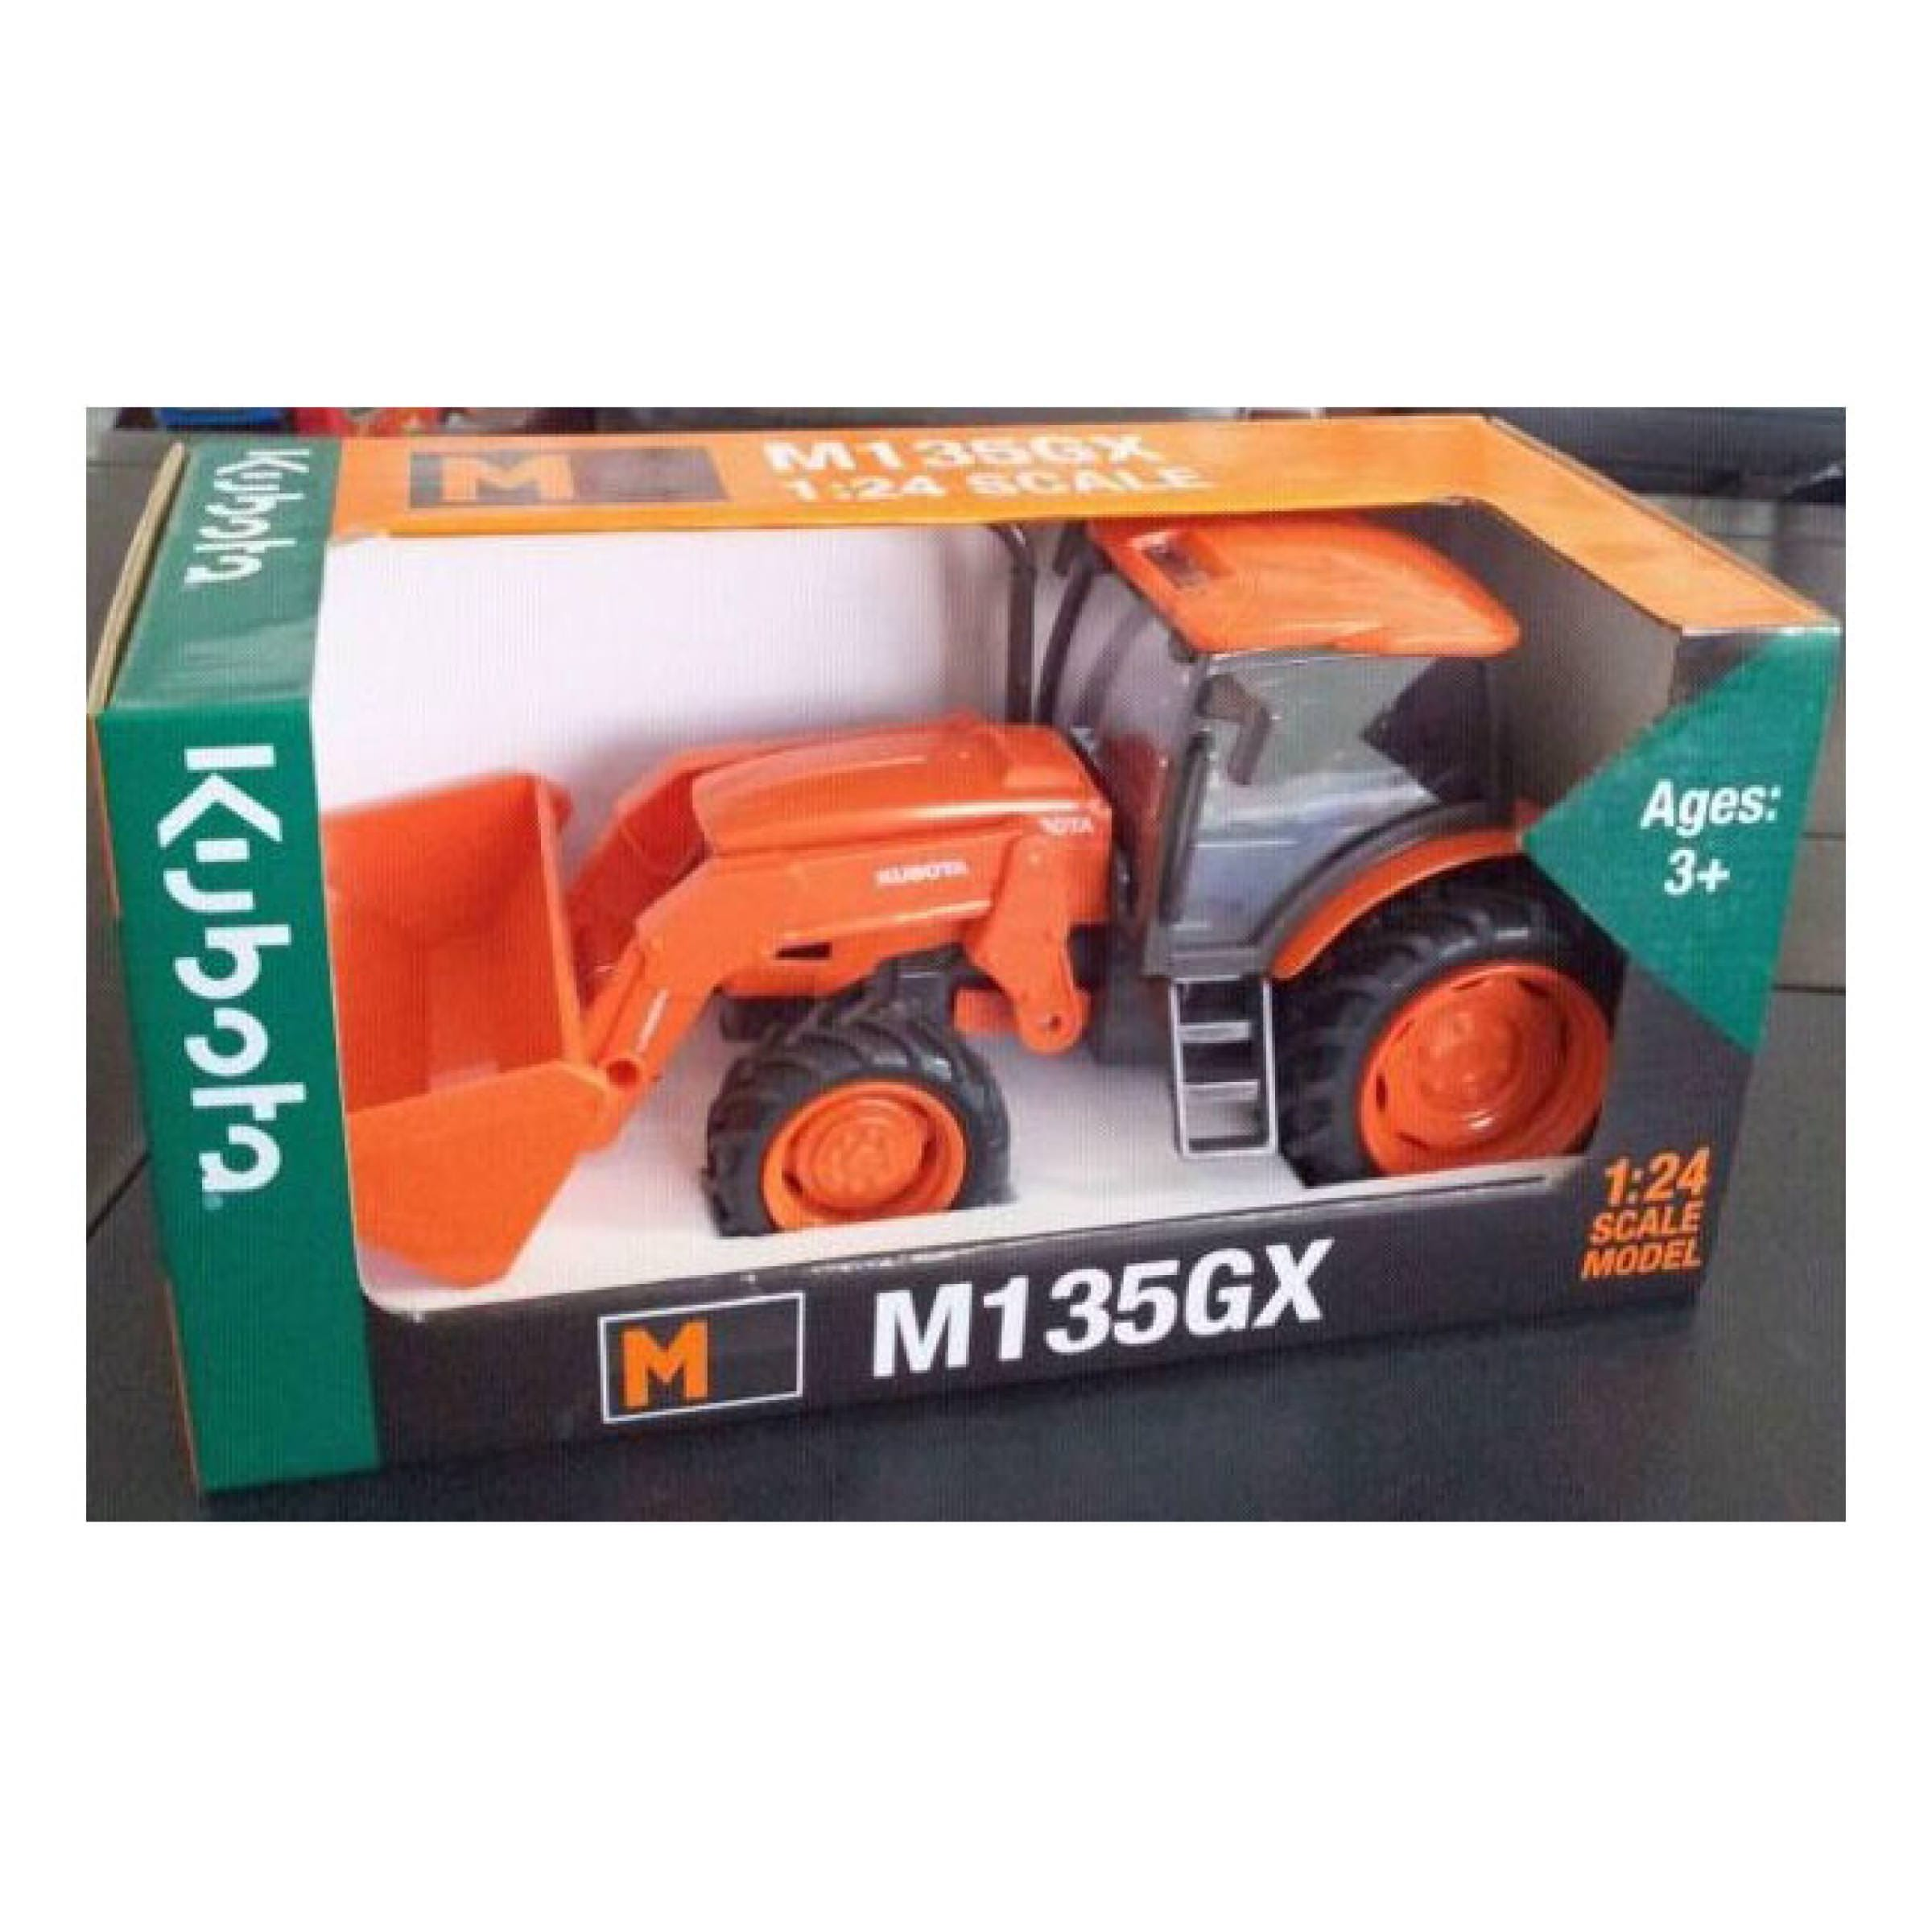 Mx135gx 1 24 Scale Toy Lano Equipment Inc